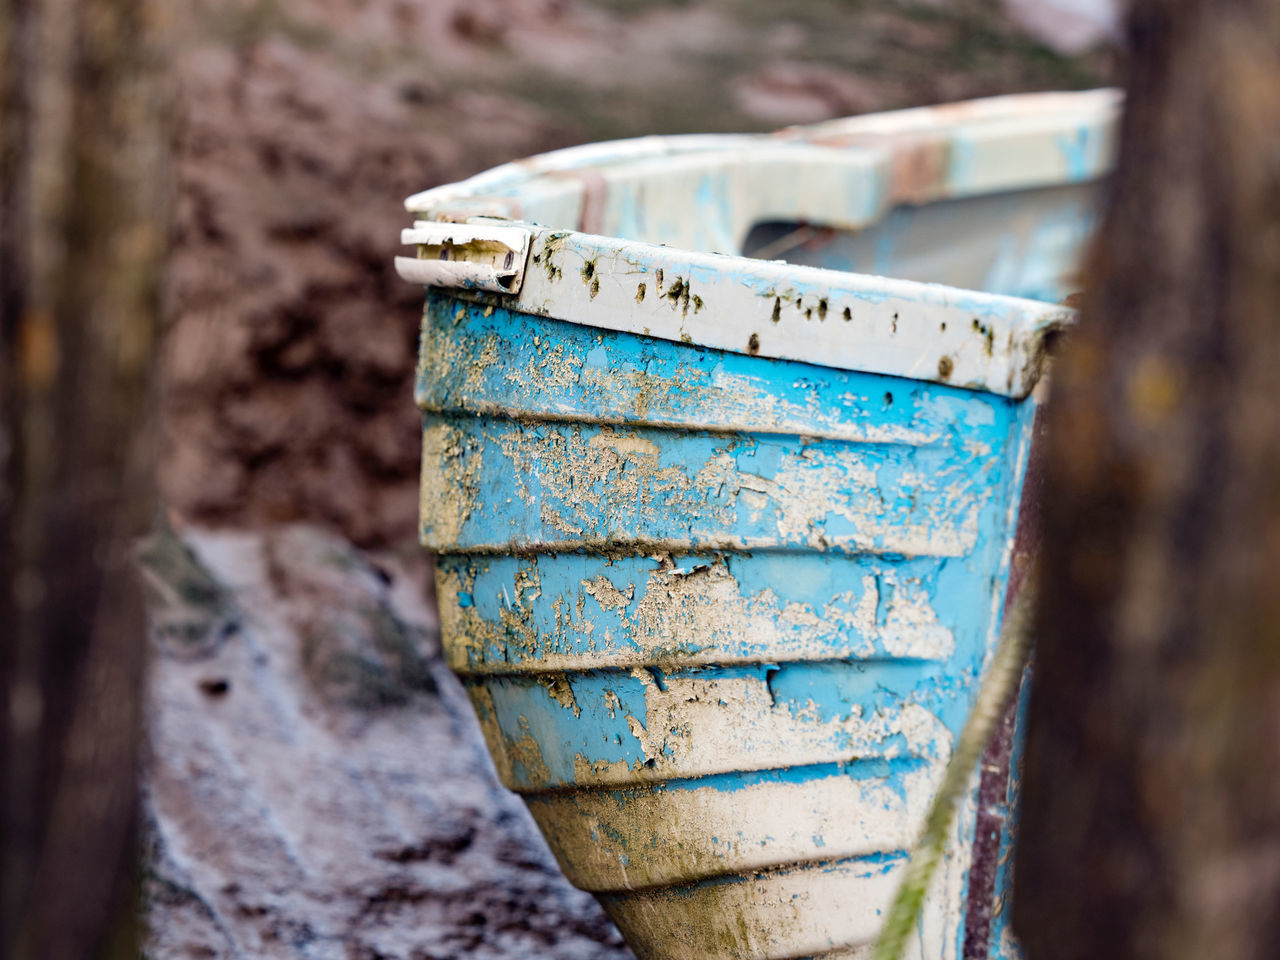 Flaked Paint ( boat ) 02. Morston Quay is a small village in North Norfolk. The quay has plenty of history and more than it's fair share of mud ! Spring and summer is busy with boat trips to see the seals. Olympus Pen F with 40-150 f2.8. Edit in Capture One pro. Beauty In Ordinary Things Beauty Of Decay Blue Boat Boat Trip Close-up Day Depth Of Field EyeEm Best Shots EyeEm Gallery Fine Art Photography Flaking Paint Mud Nature No People Norfolk Outdoors Pattern, Texture, Shape And Form Textures And Surfaces Walking Around Weathered Worn Out